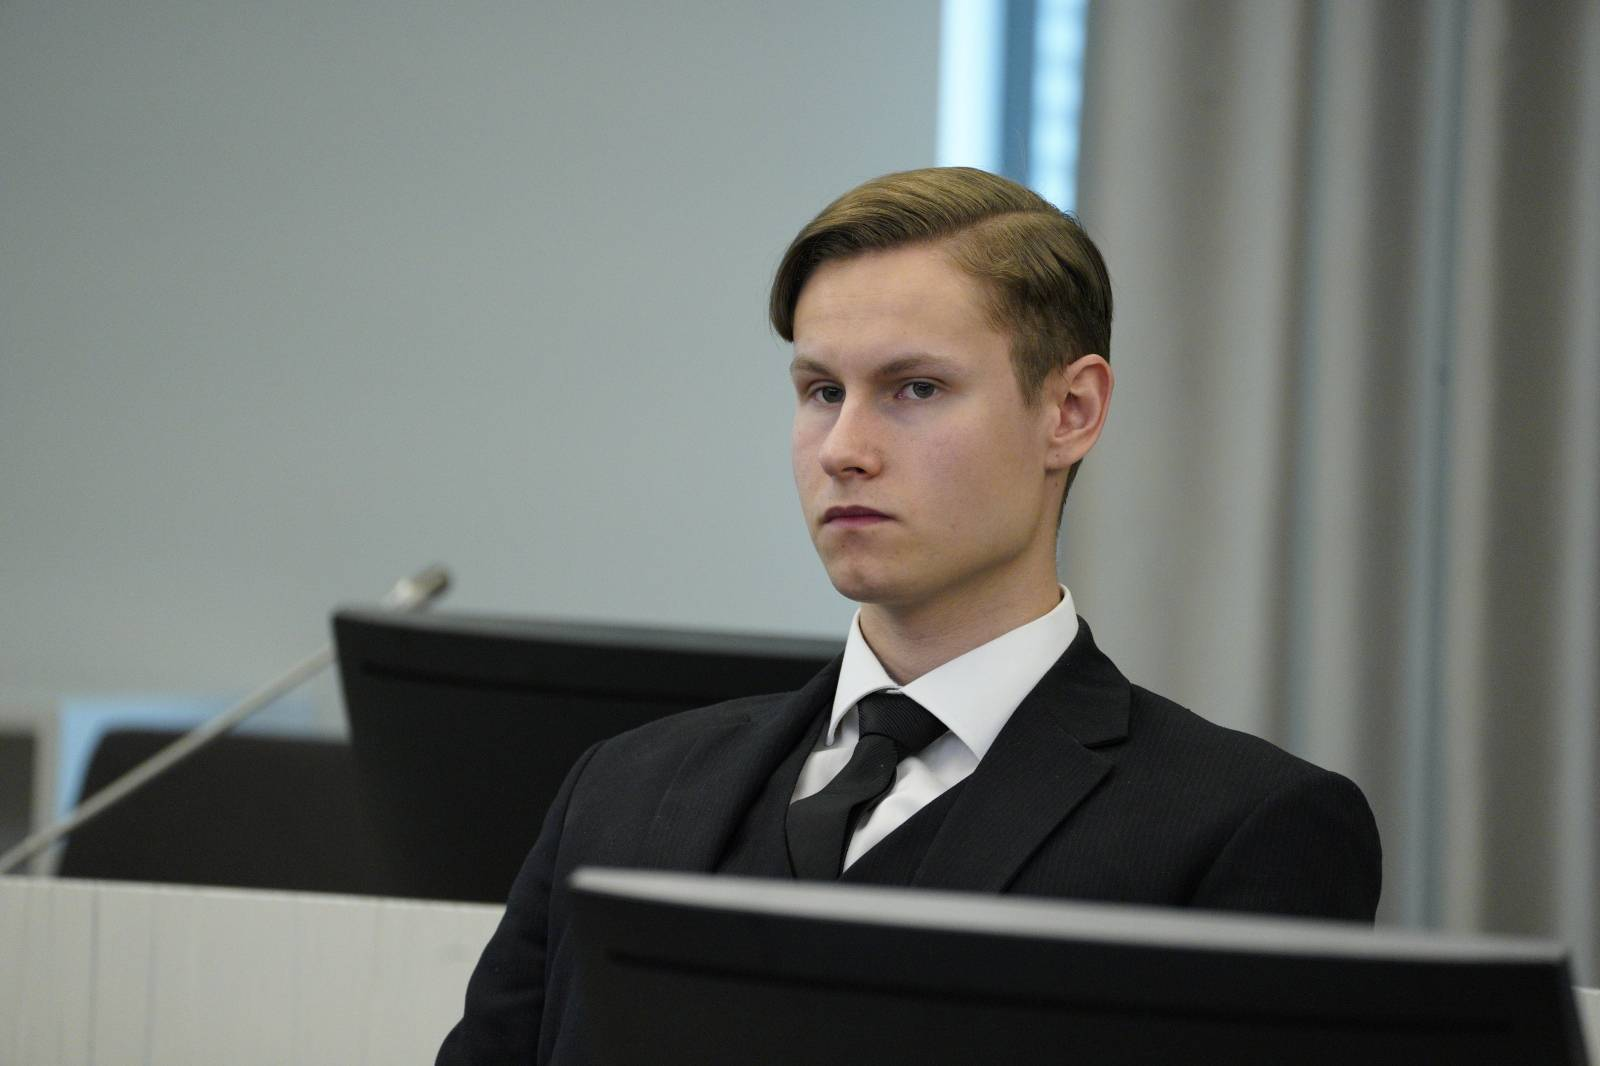 Al-Noor Islamic Centre Mosque shooter Philip Manshaus appears for the verdict at Asker and Baerum district court in Sandvika